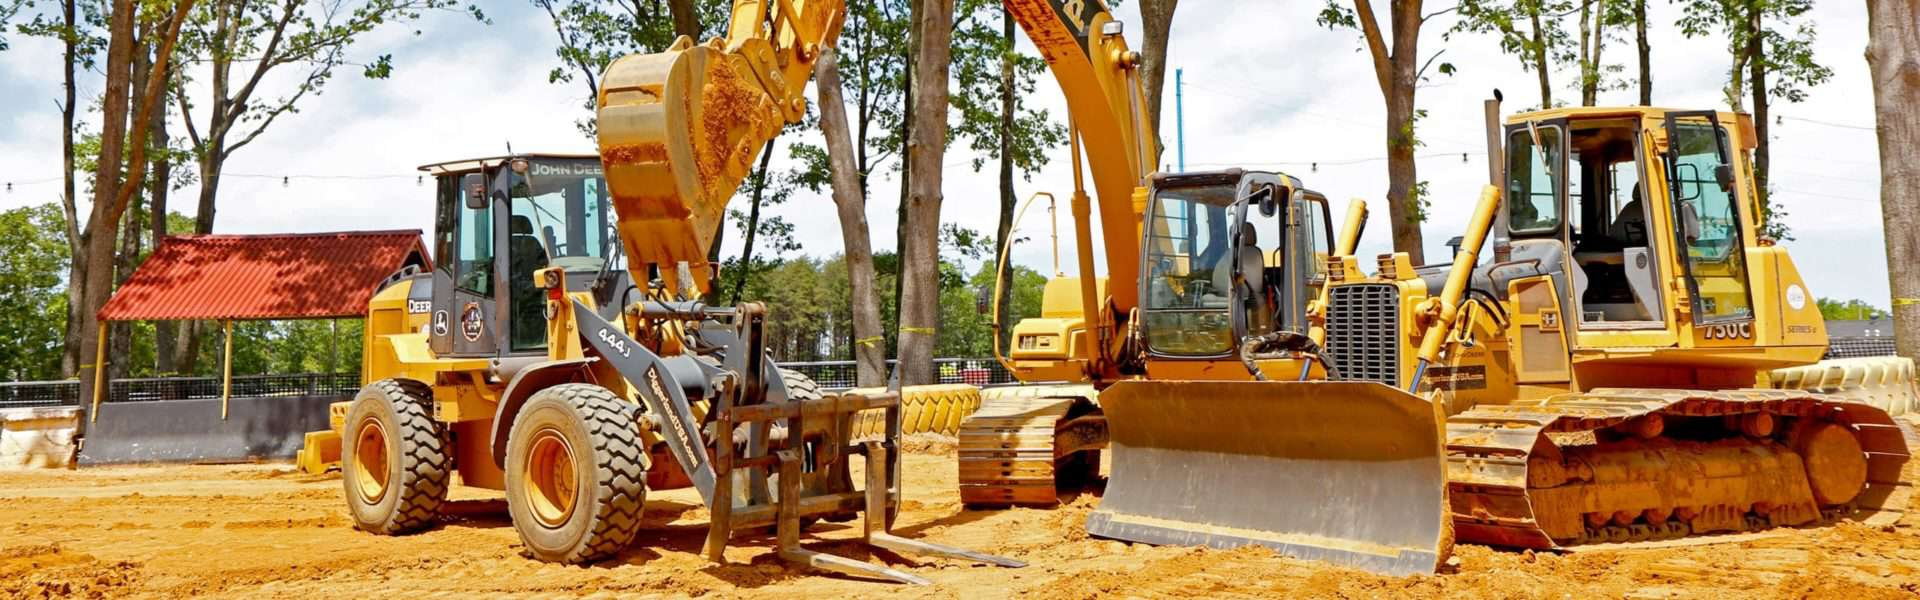 Diggerland XL - Operate real heavy machines with one-on-one instruction